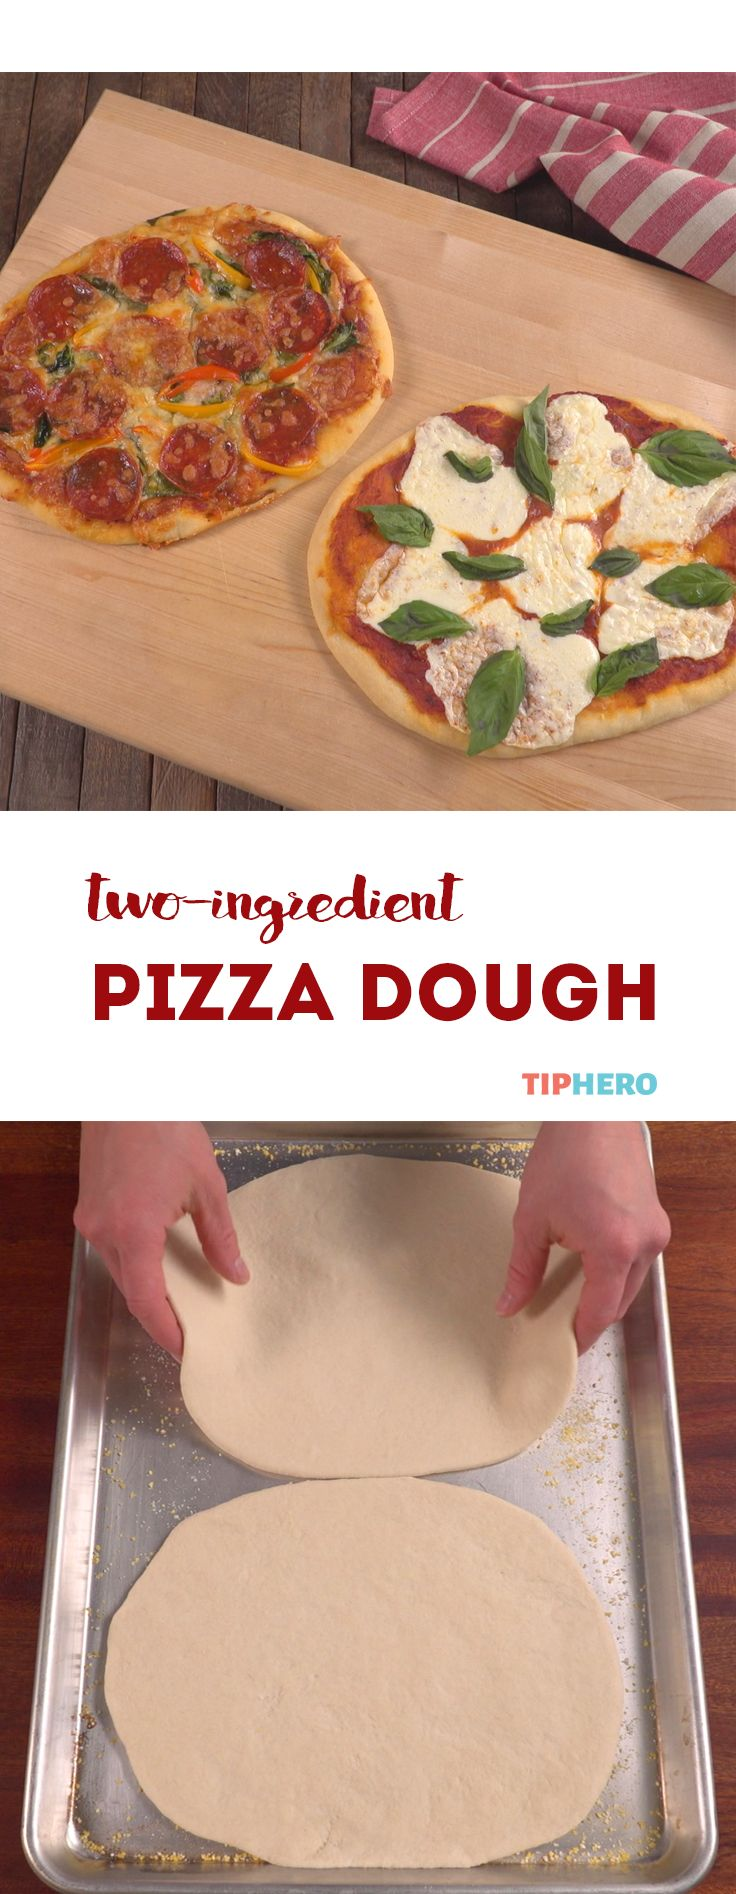 Yes, you read that correctly— pizza dough out of only two ingredients! It's almost like magic, and you can whip it up and bake it in under an hour. However you like to top your pizzas, this crust is the perfect easy base. Grab some Greek yogurt, grab some self-rising flour, and watch how it's made!